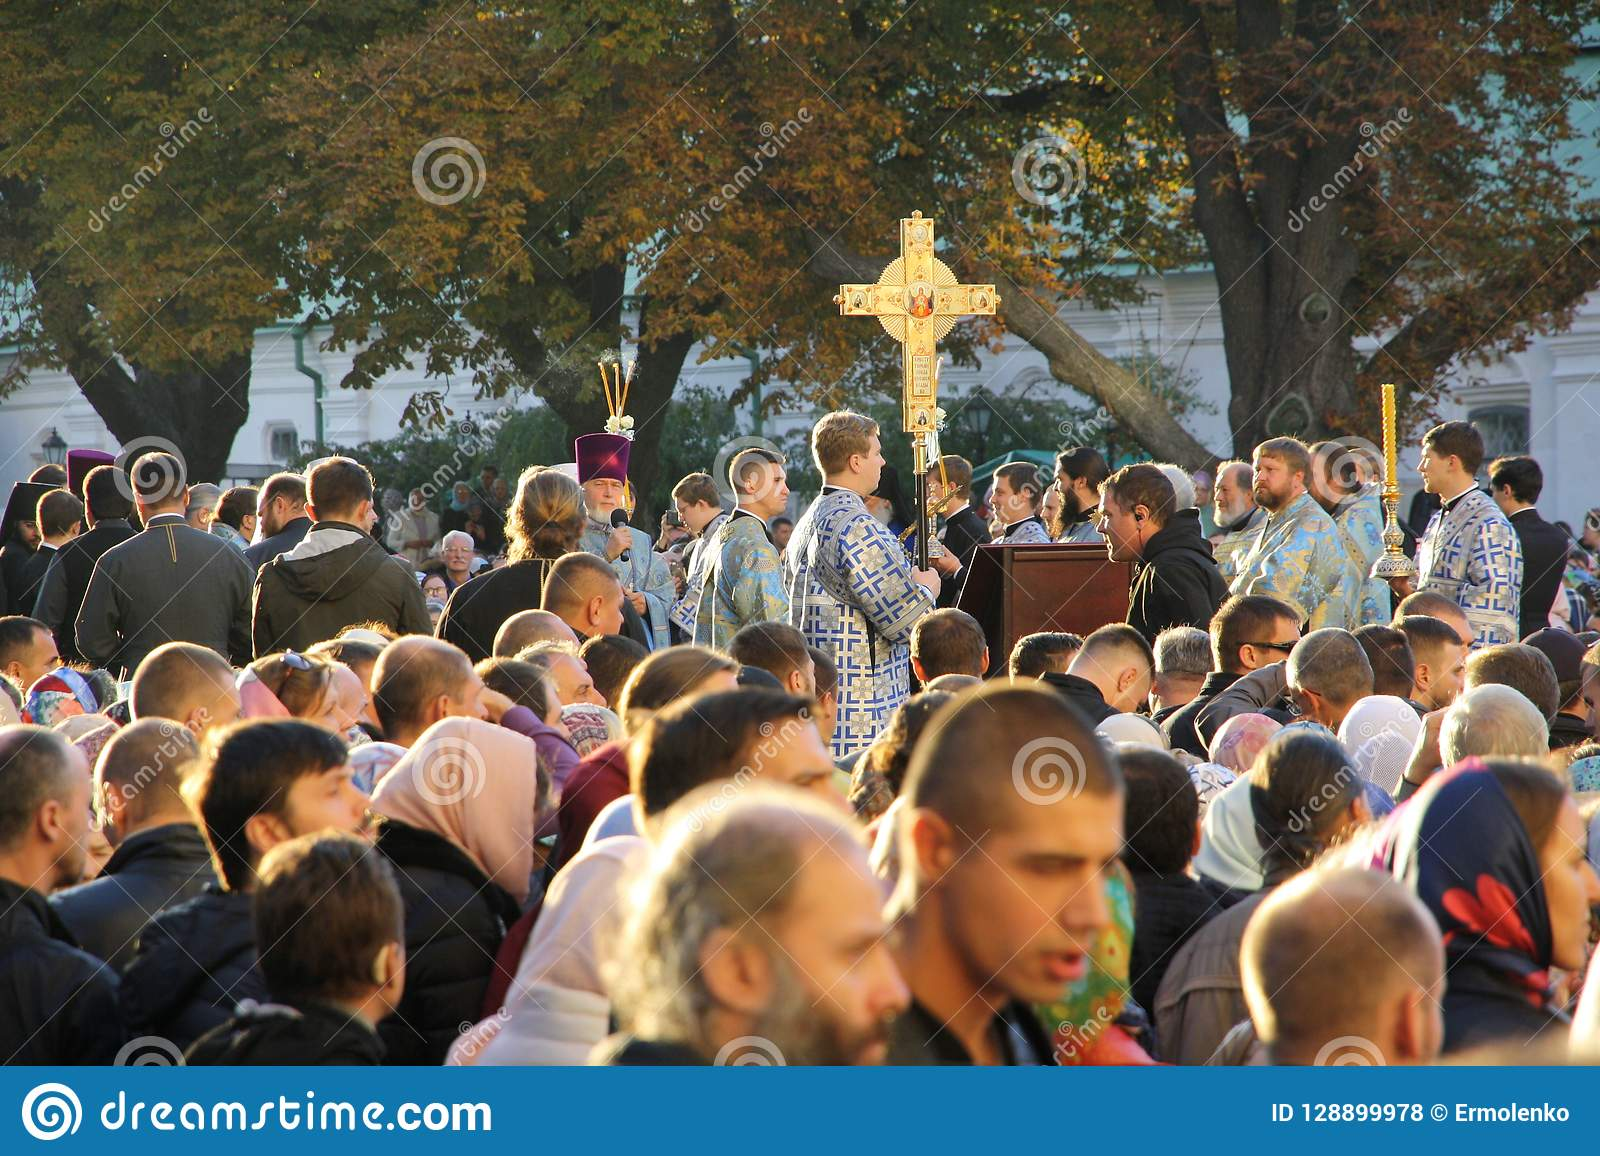 Celebration of the feast of the Protection of the Virgin in Kiev.